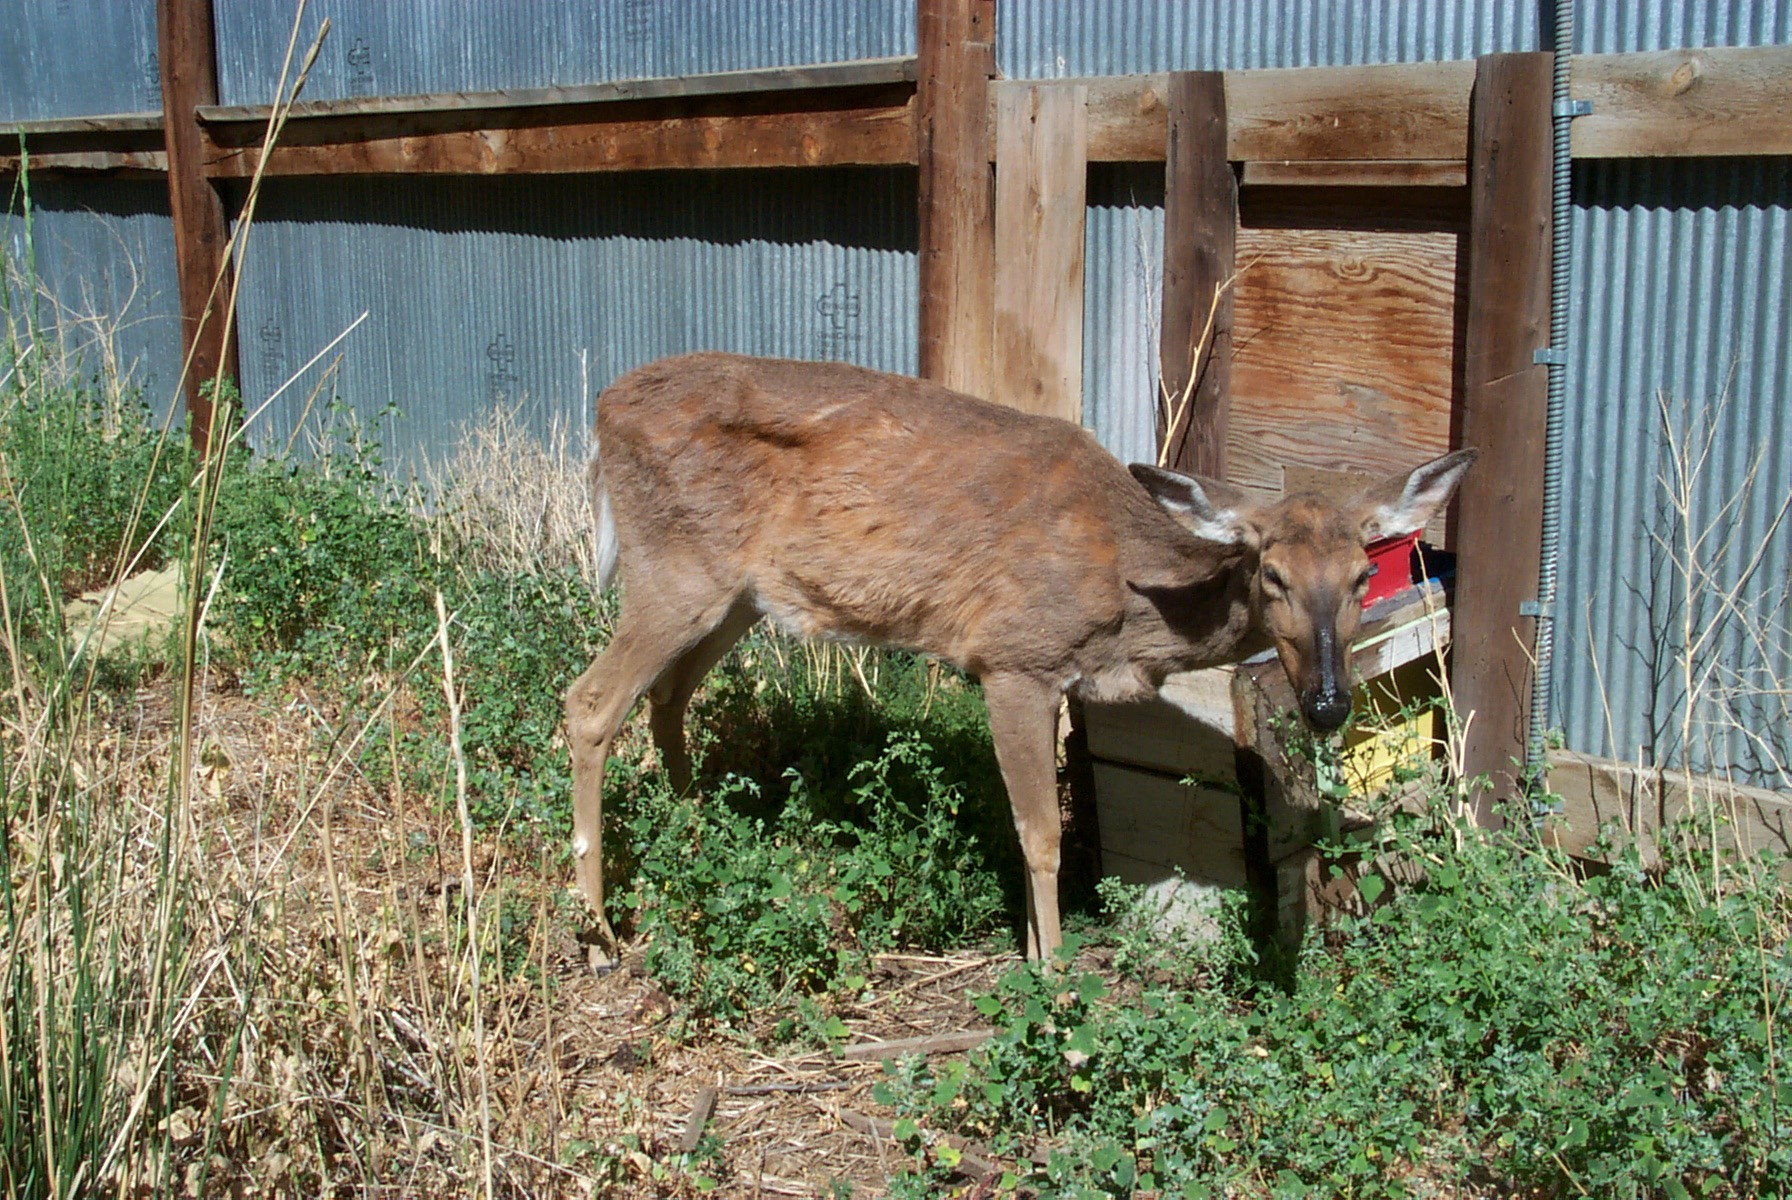 Image Via Dr. Terry Kreeger, Wyoming Game and Fish Department via CWD Alliance.